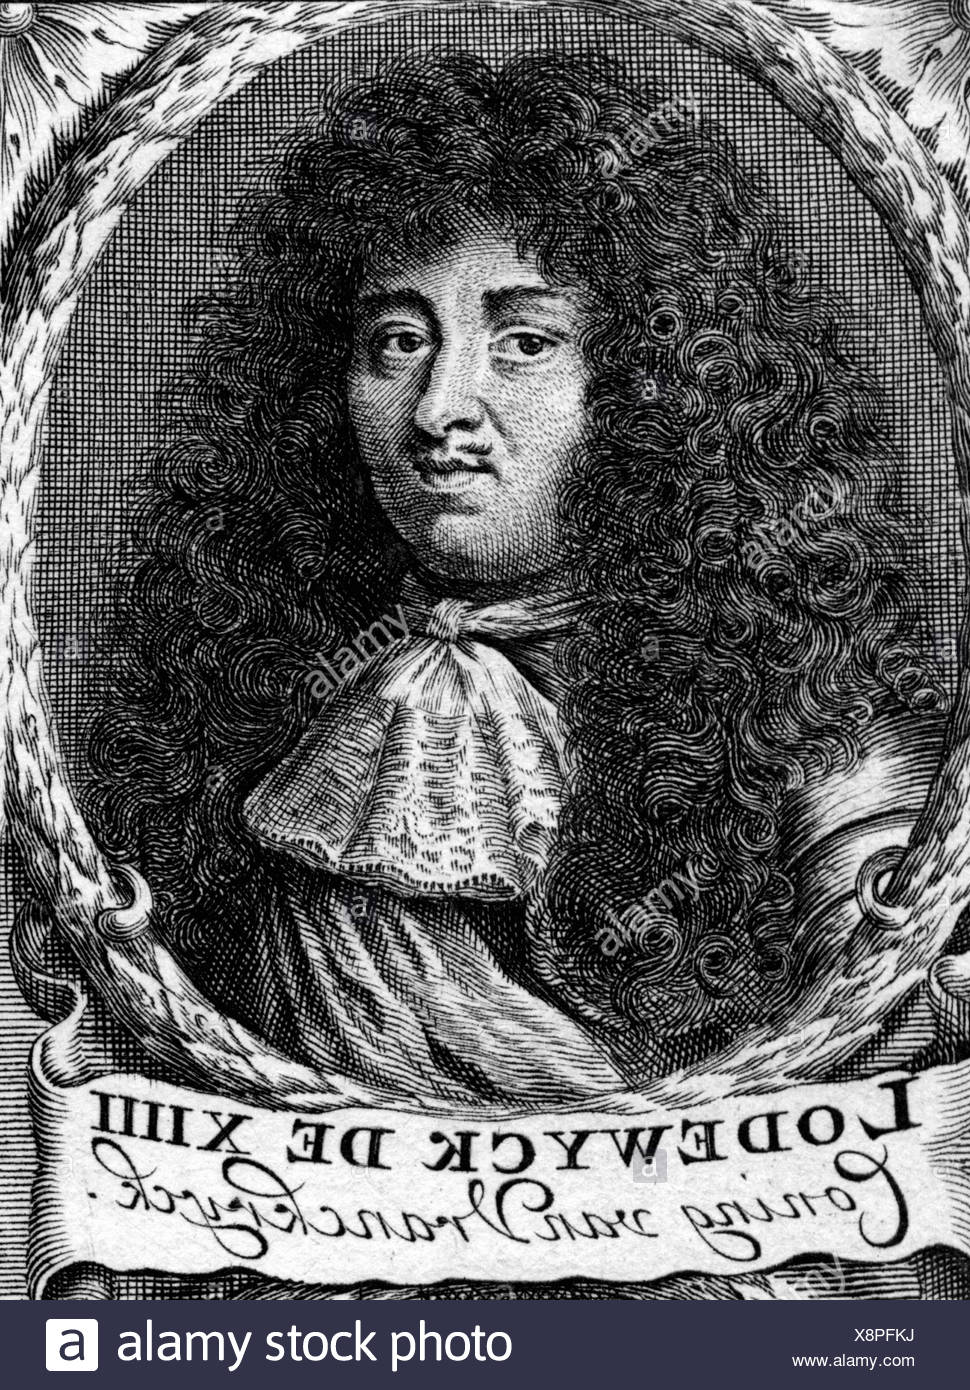 Louis XIV, 5.9.1638 - 1.9.1715, King of France 1643 - 1715, portrait, Dutch copper engraving, 17th century, Artist's Copyright has not to be cleared Stock Photo